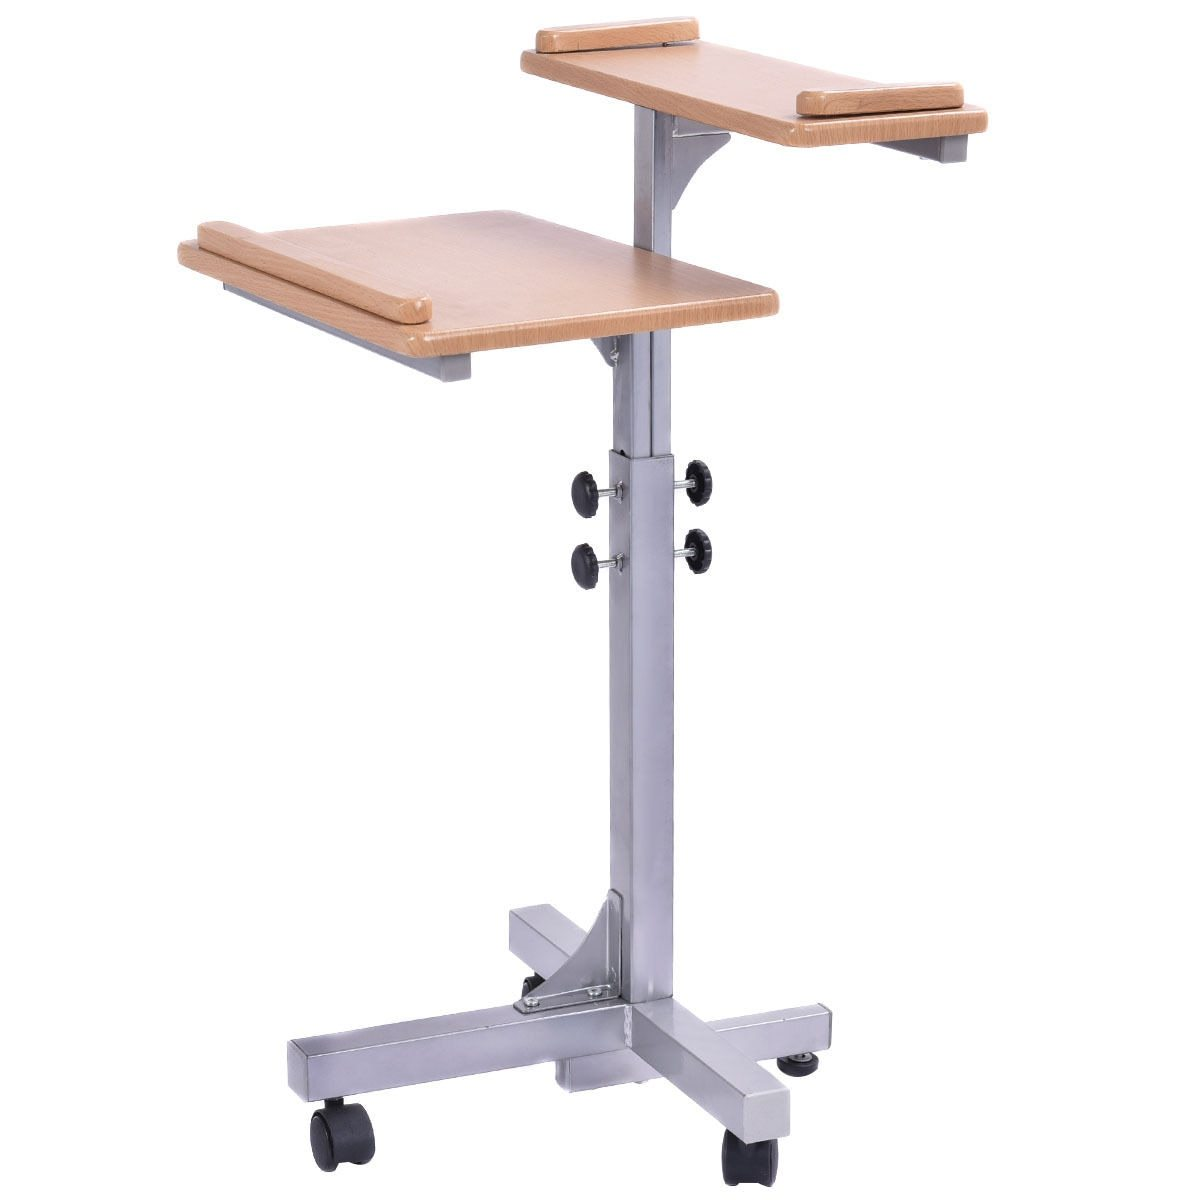 Adjustable Portable Rolling Laptop Stand